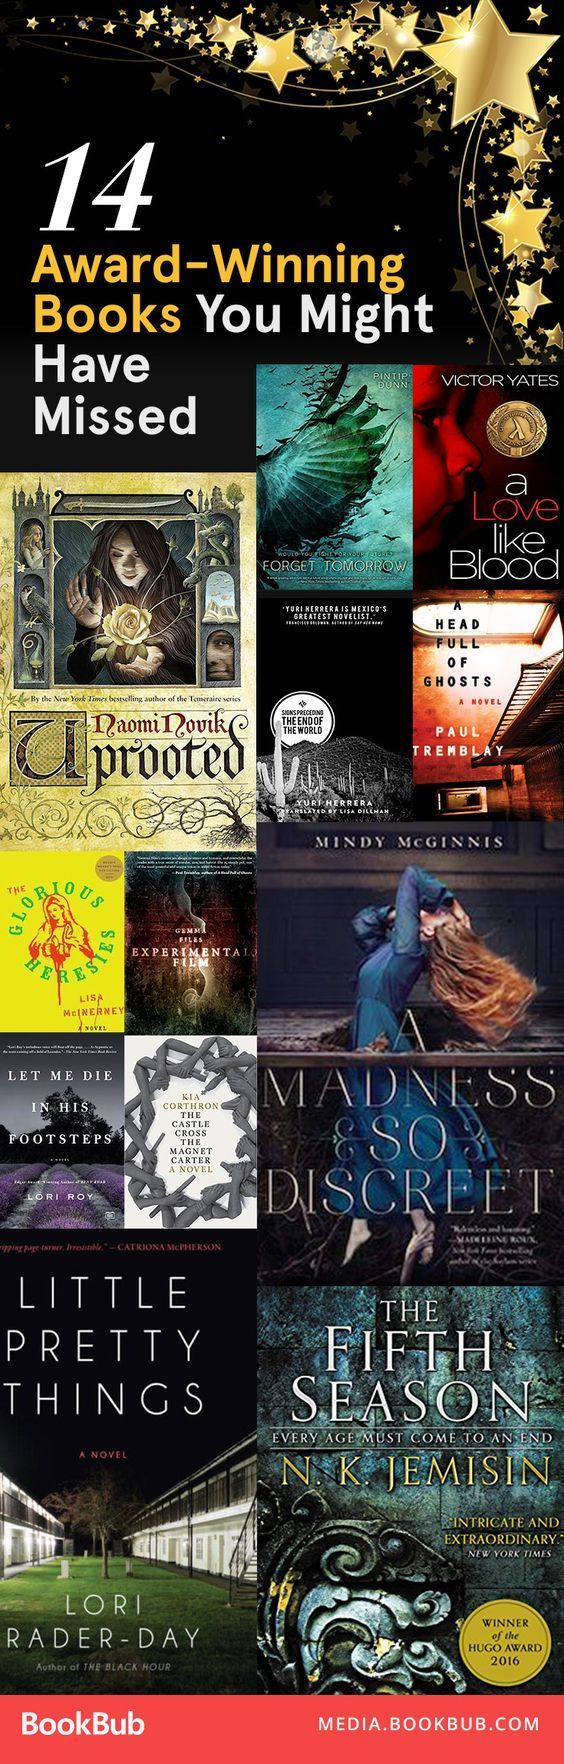 Award-winning books to read next -- add to your reading list before you forget! | best selling books reading list | booklist of award winning books